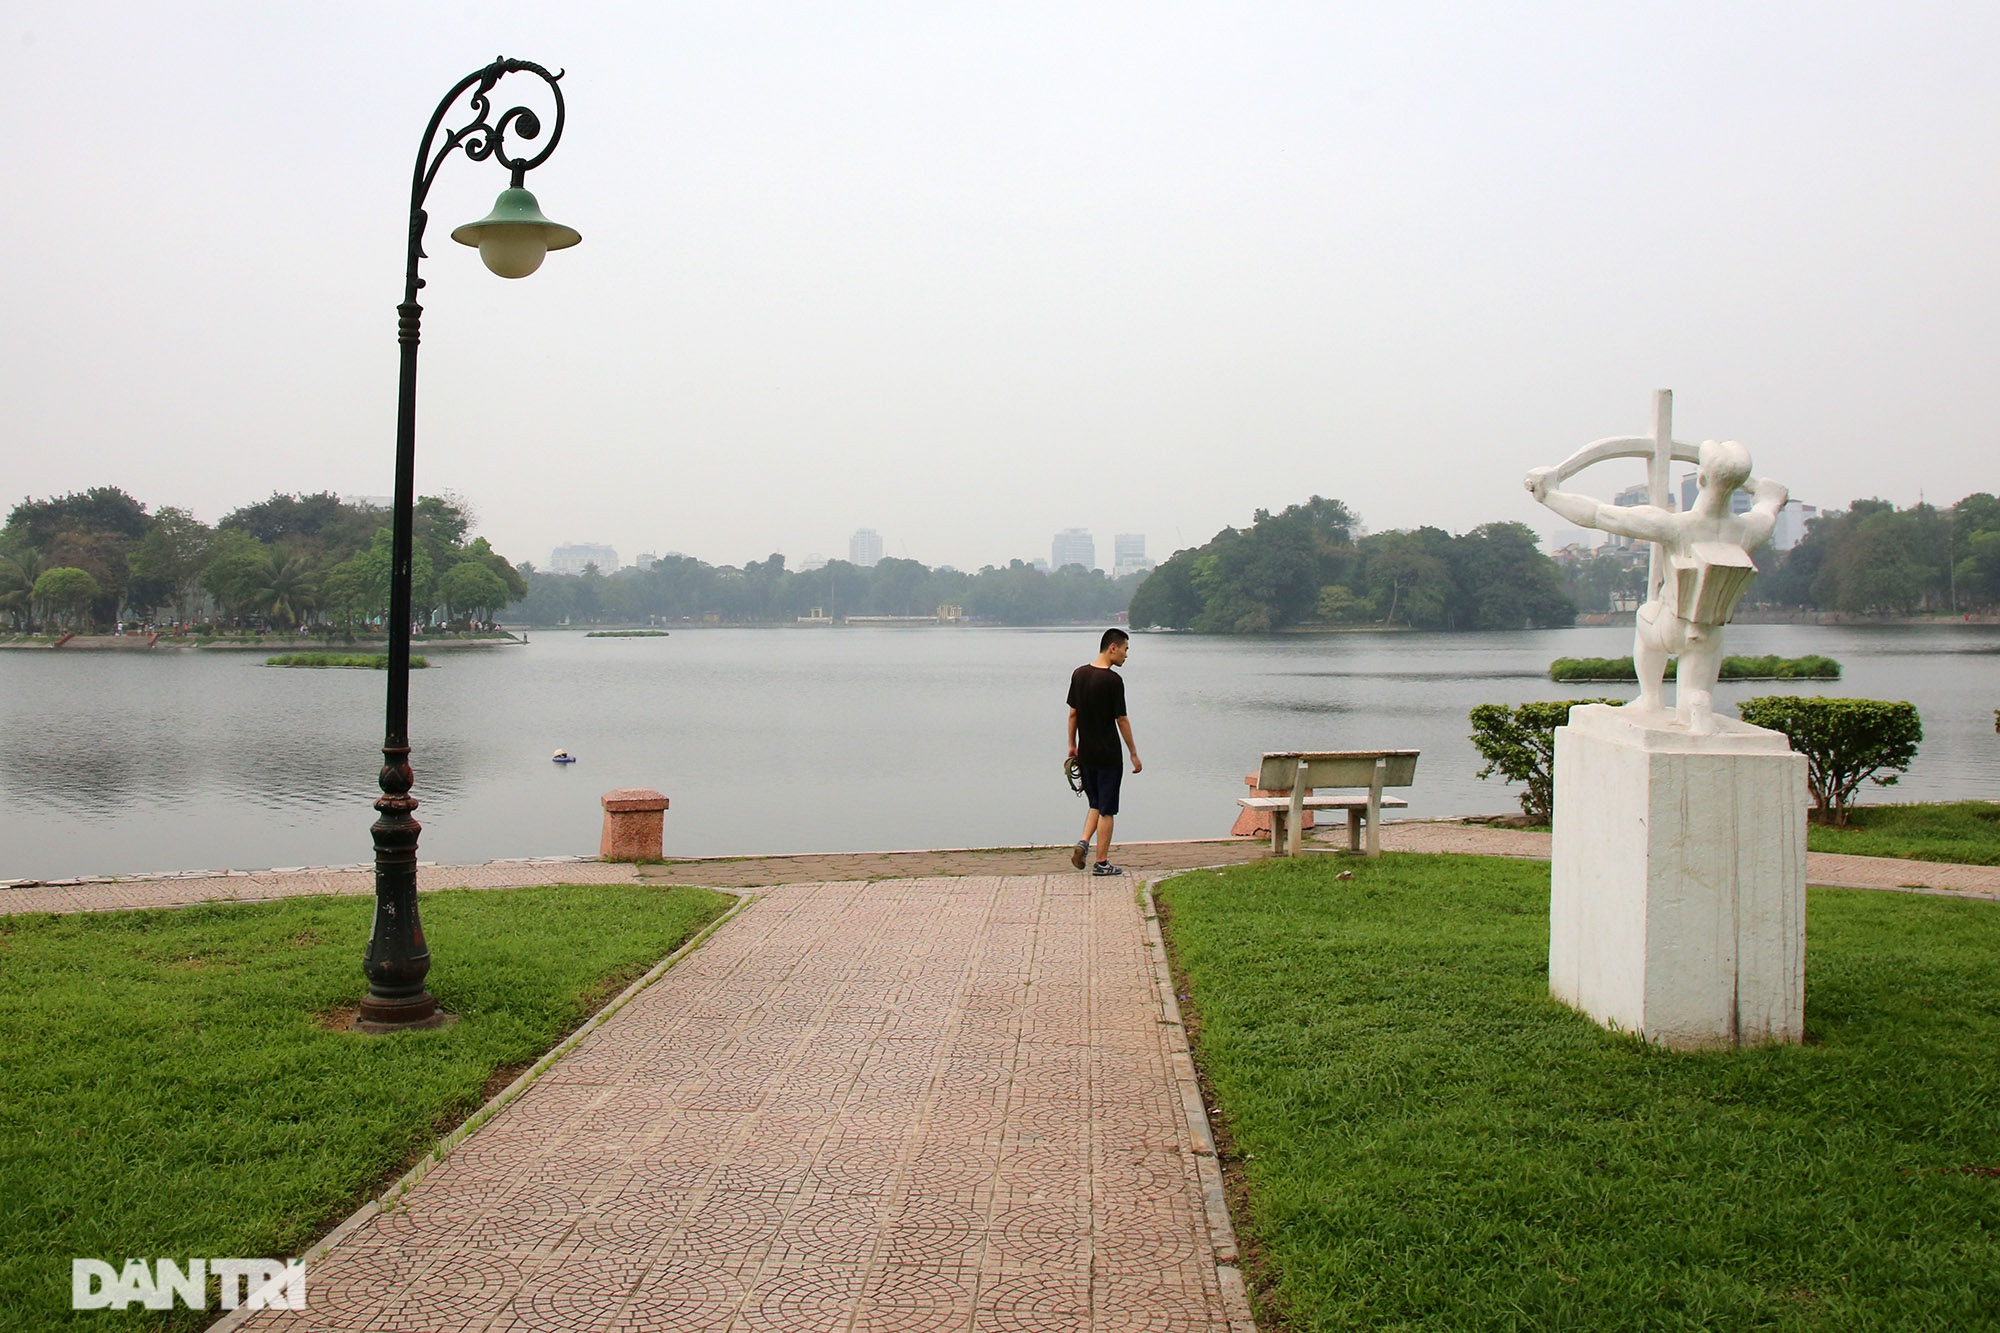 Little-known things about the largest park in Hanoi about 60 years old - 13 years old